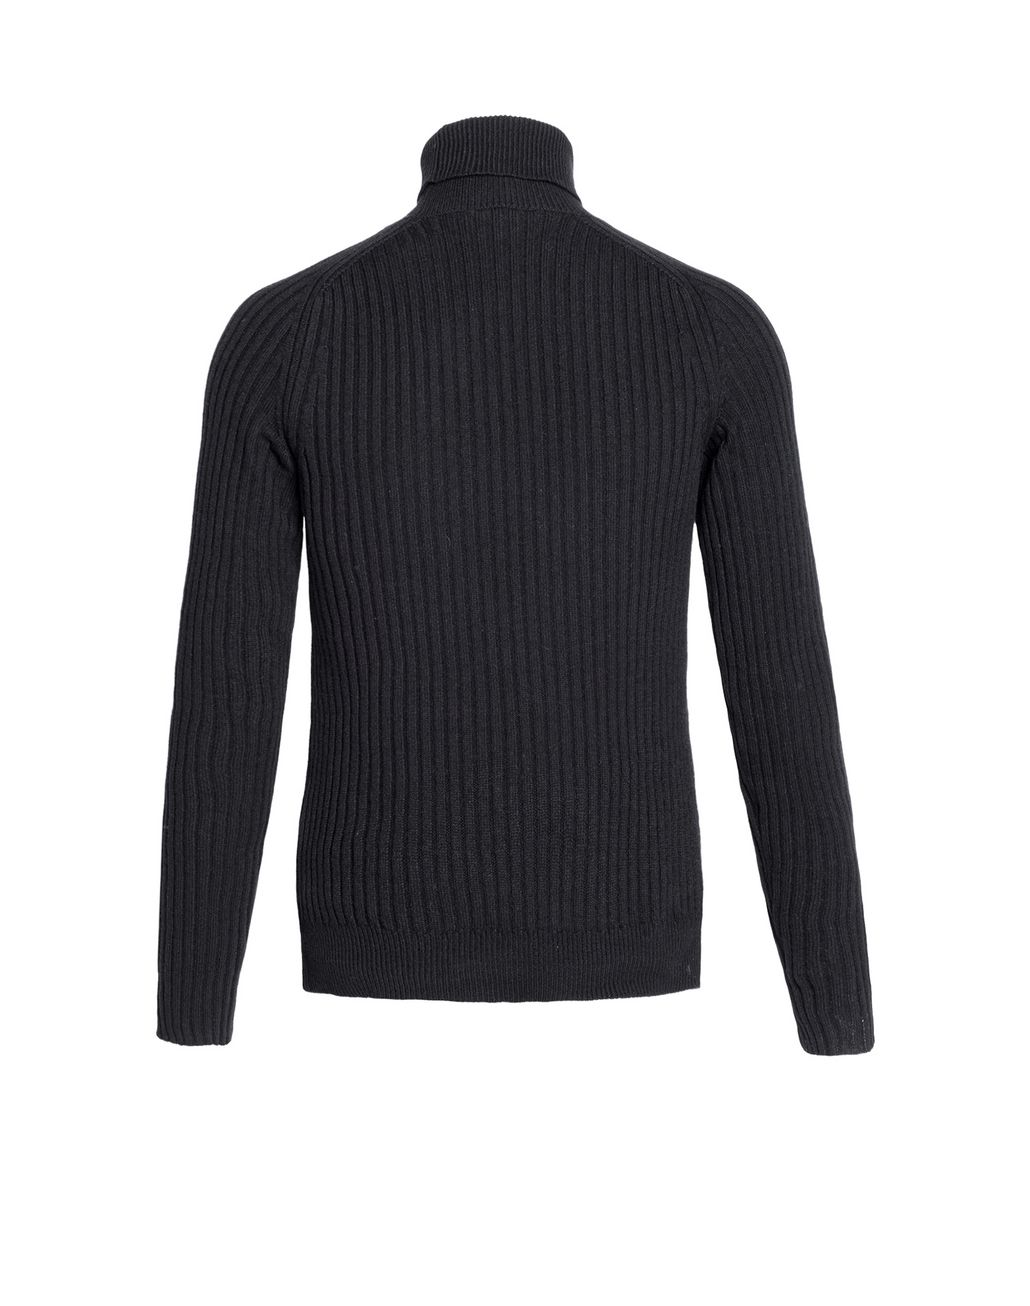 BRIONI Black Cashmere Ribbed Turtleneck Sweater Knitwear U d